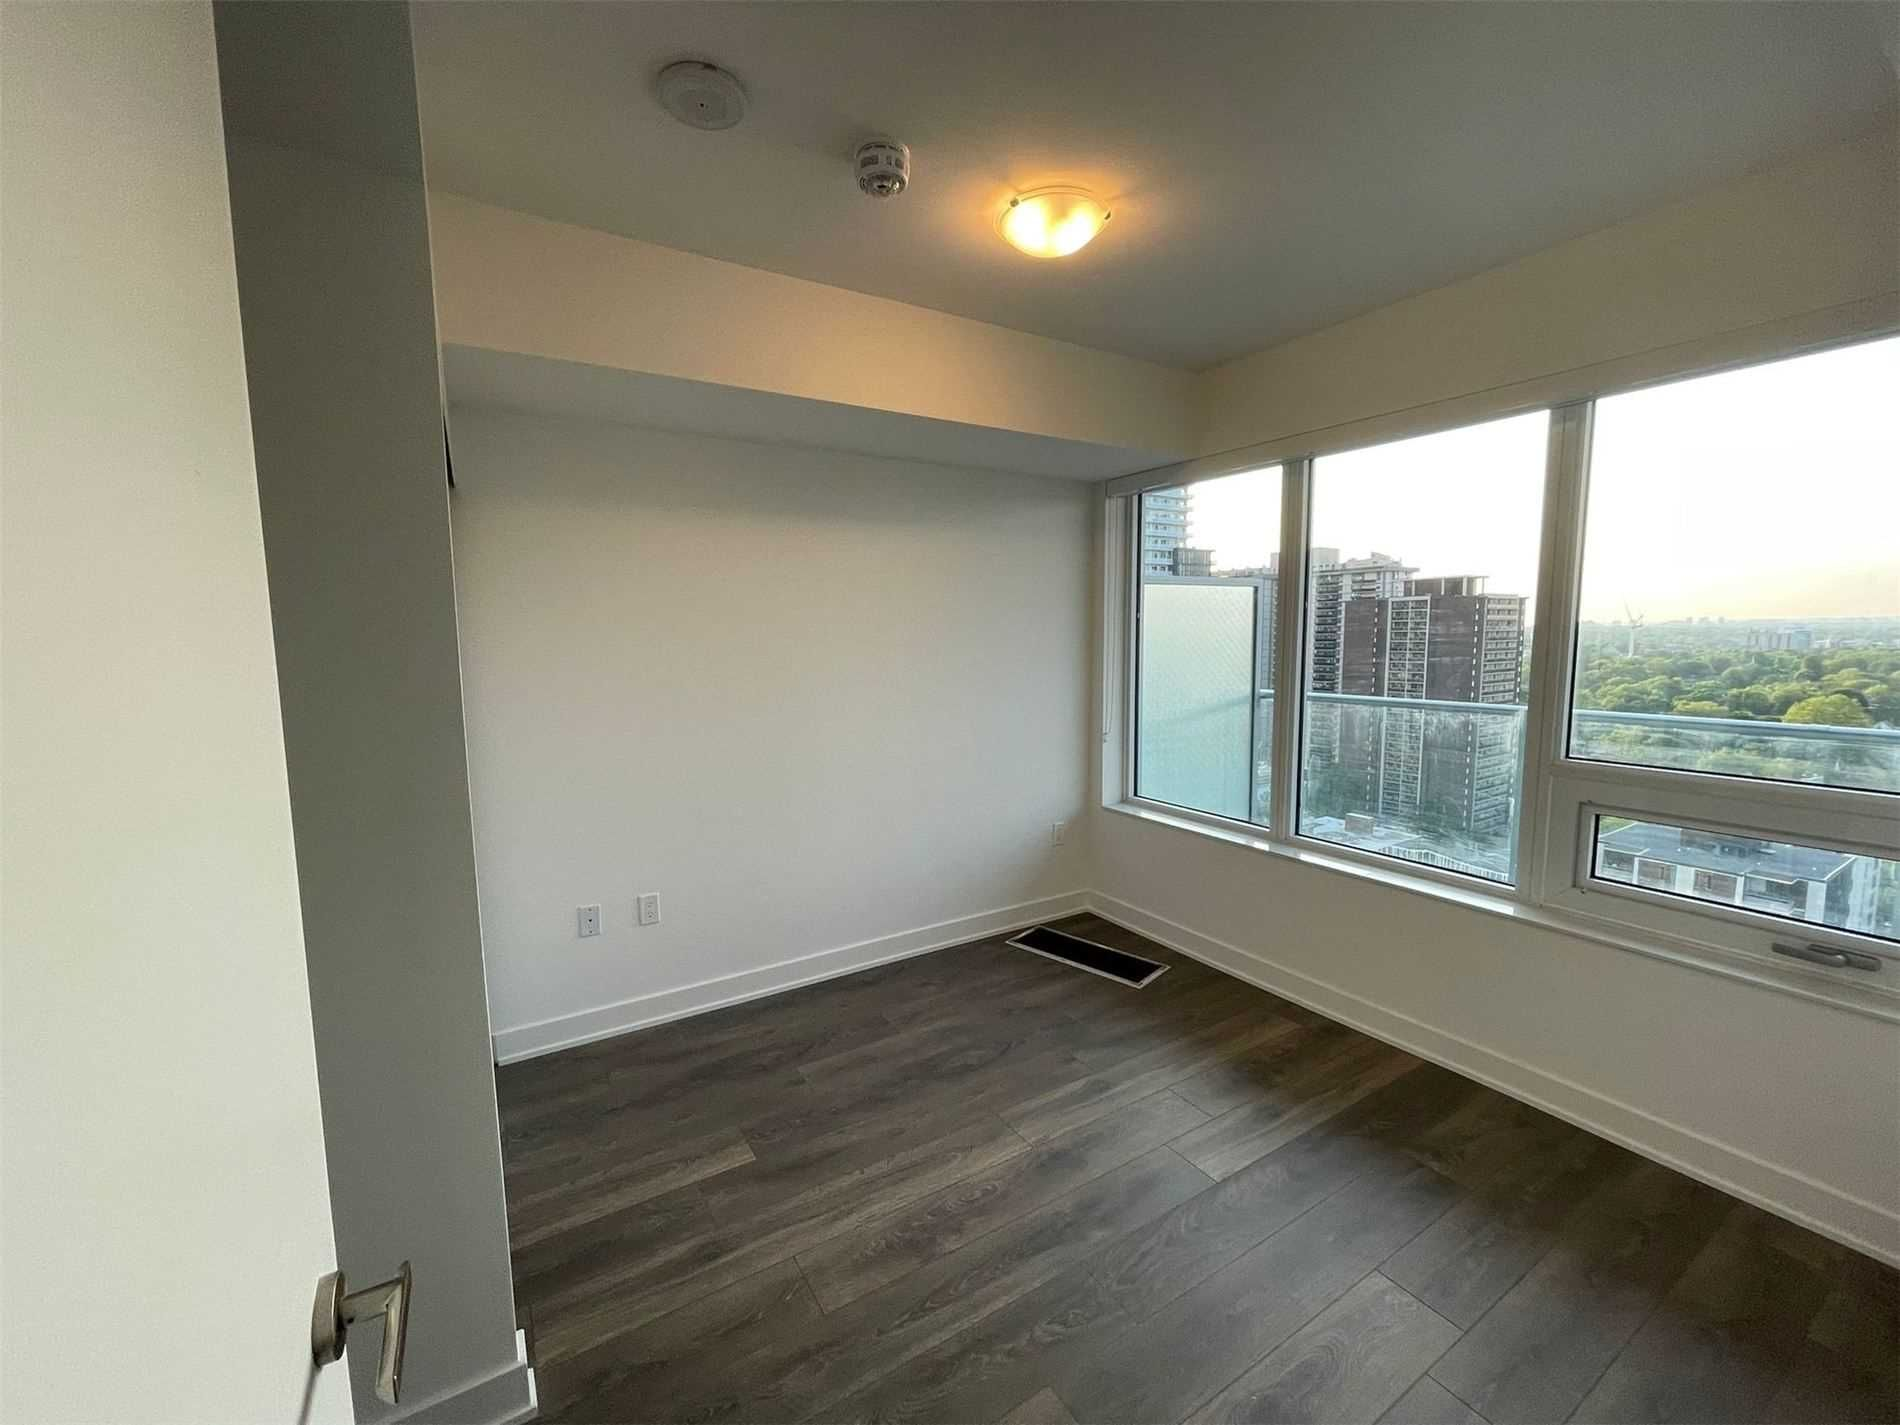 99 Broadway Ave, unit 1902 Nt for rent in Toronto - image #2